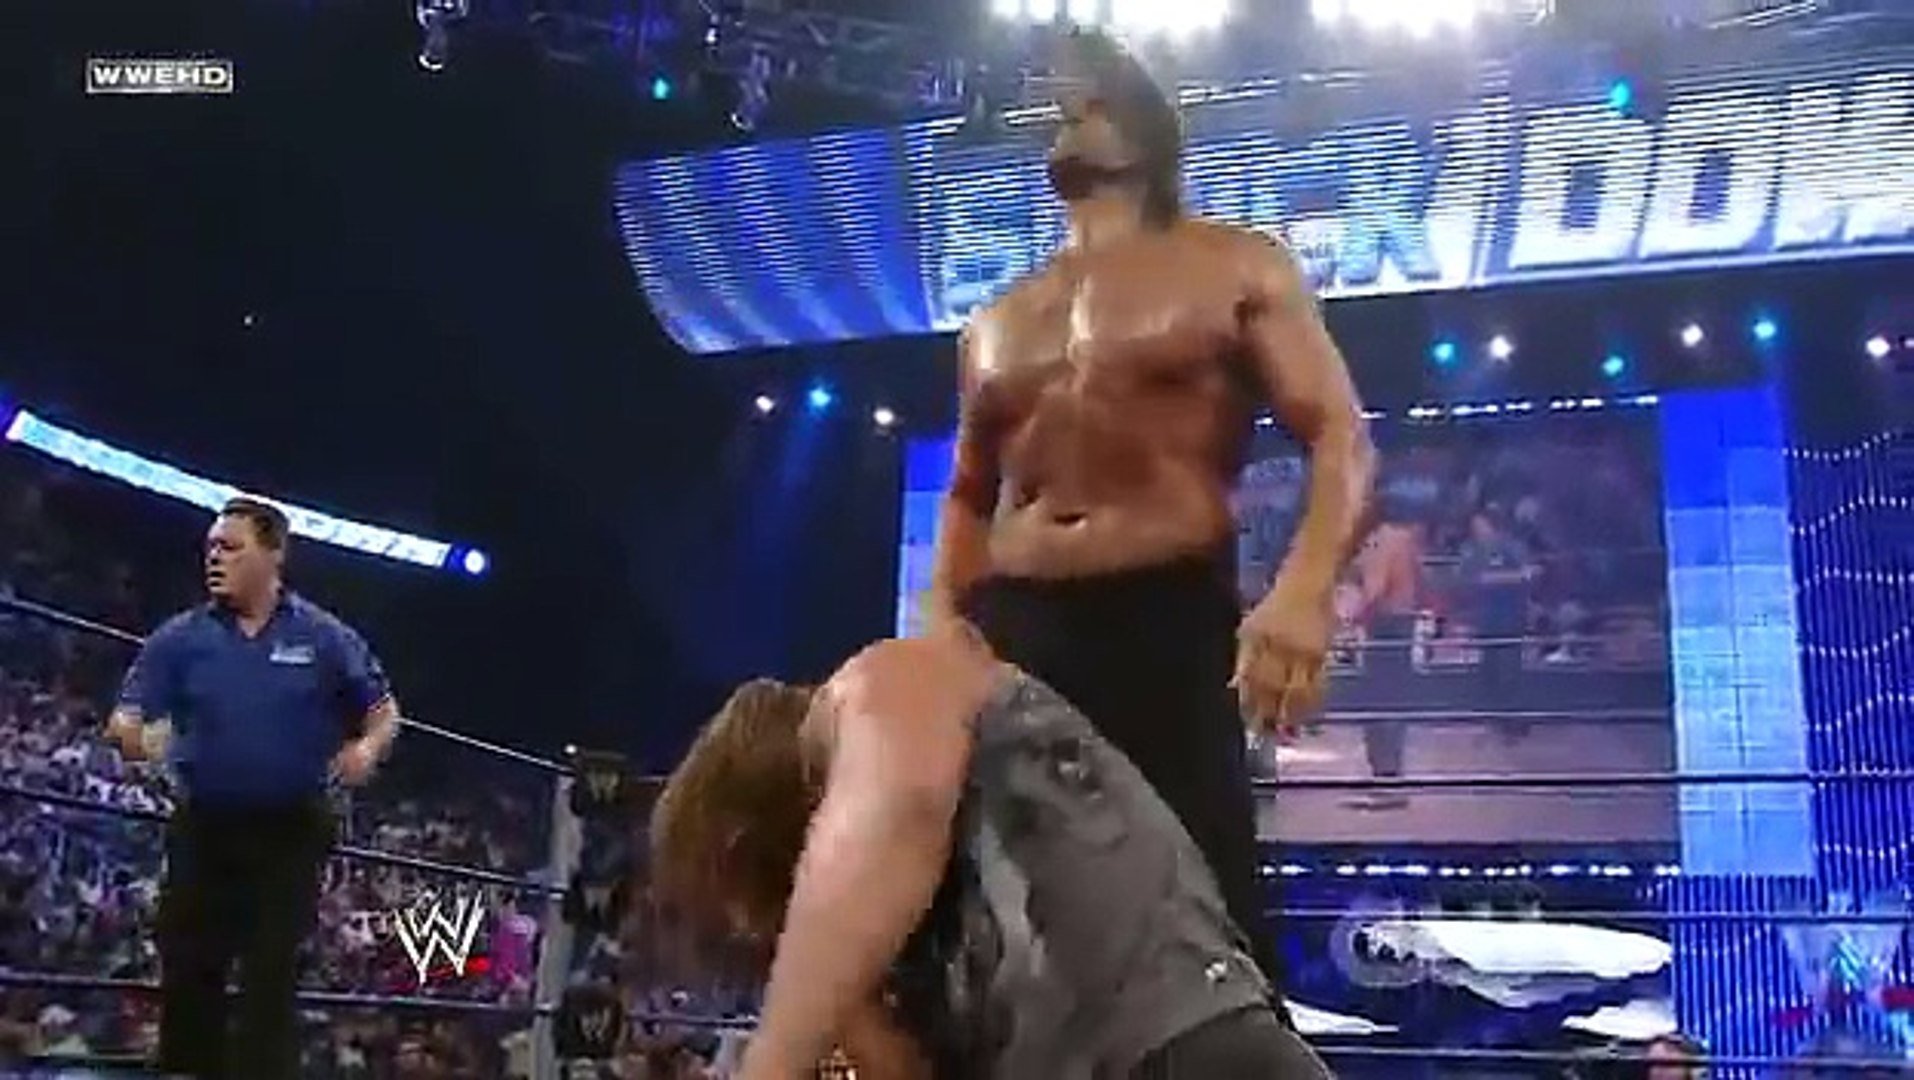 Triple H vs. The Great Khali (Broken Glass Arm Wrestling).